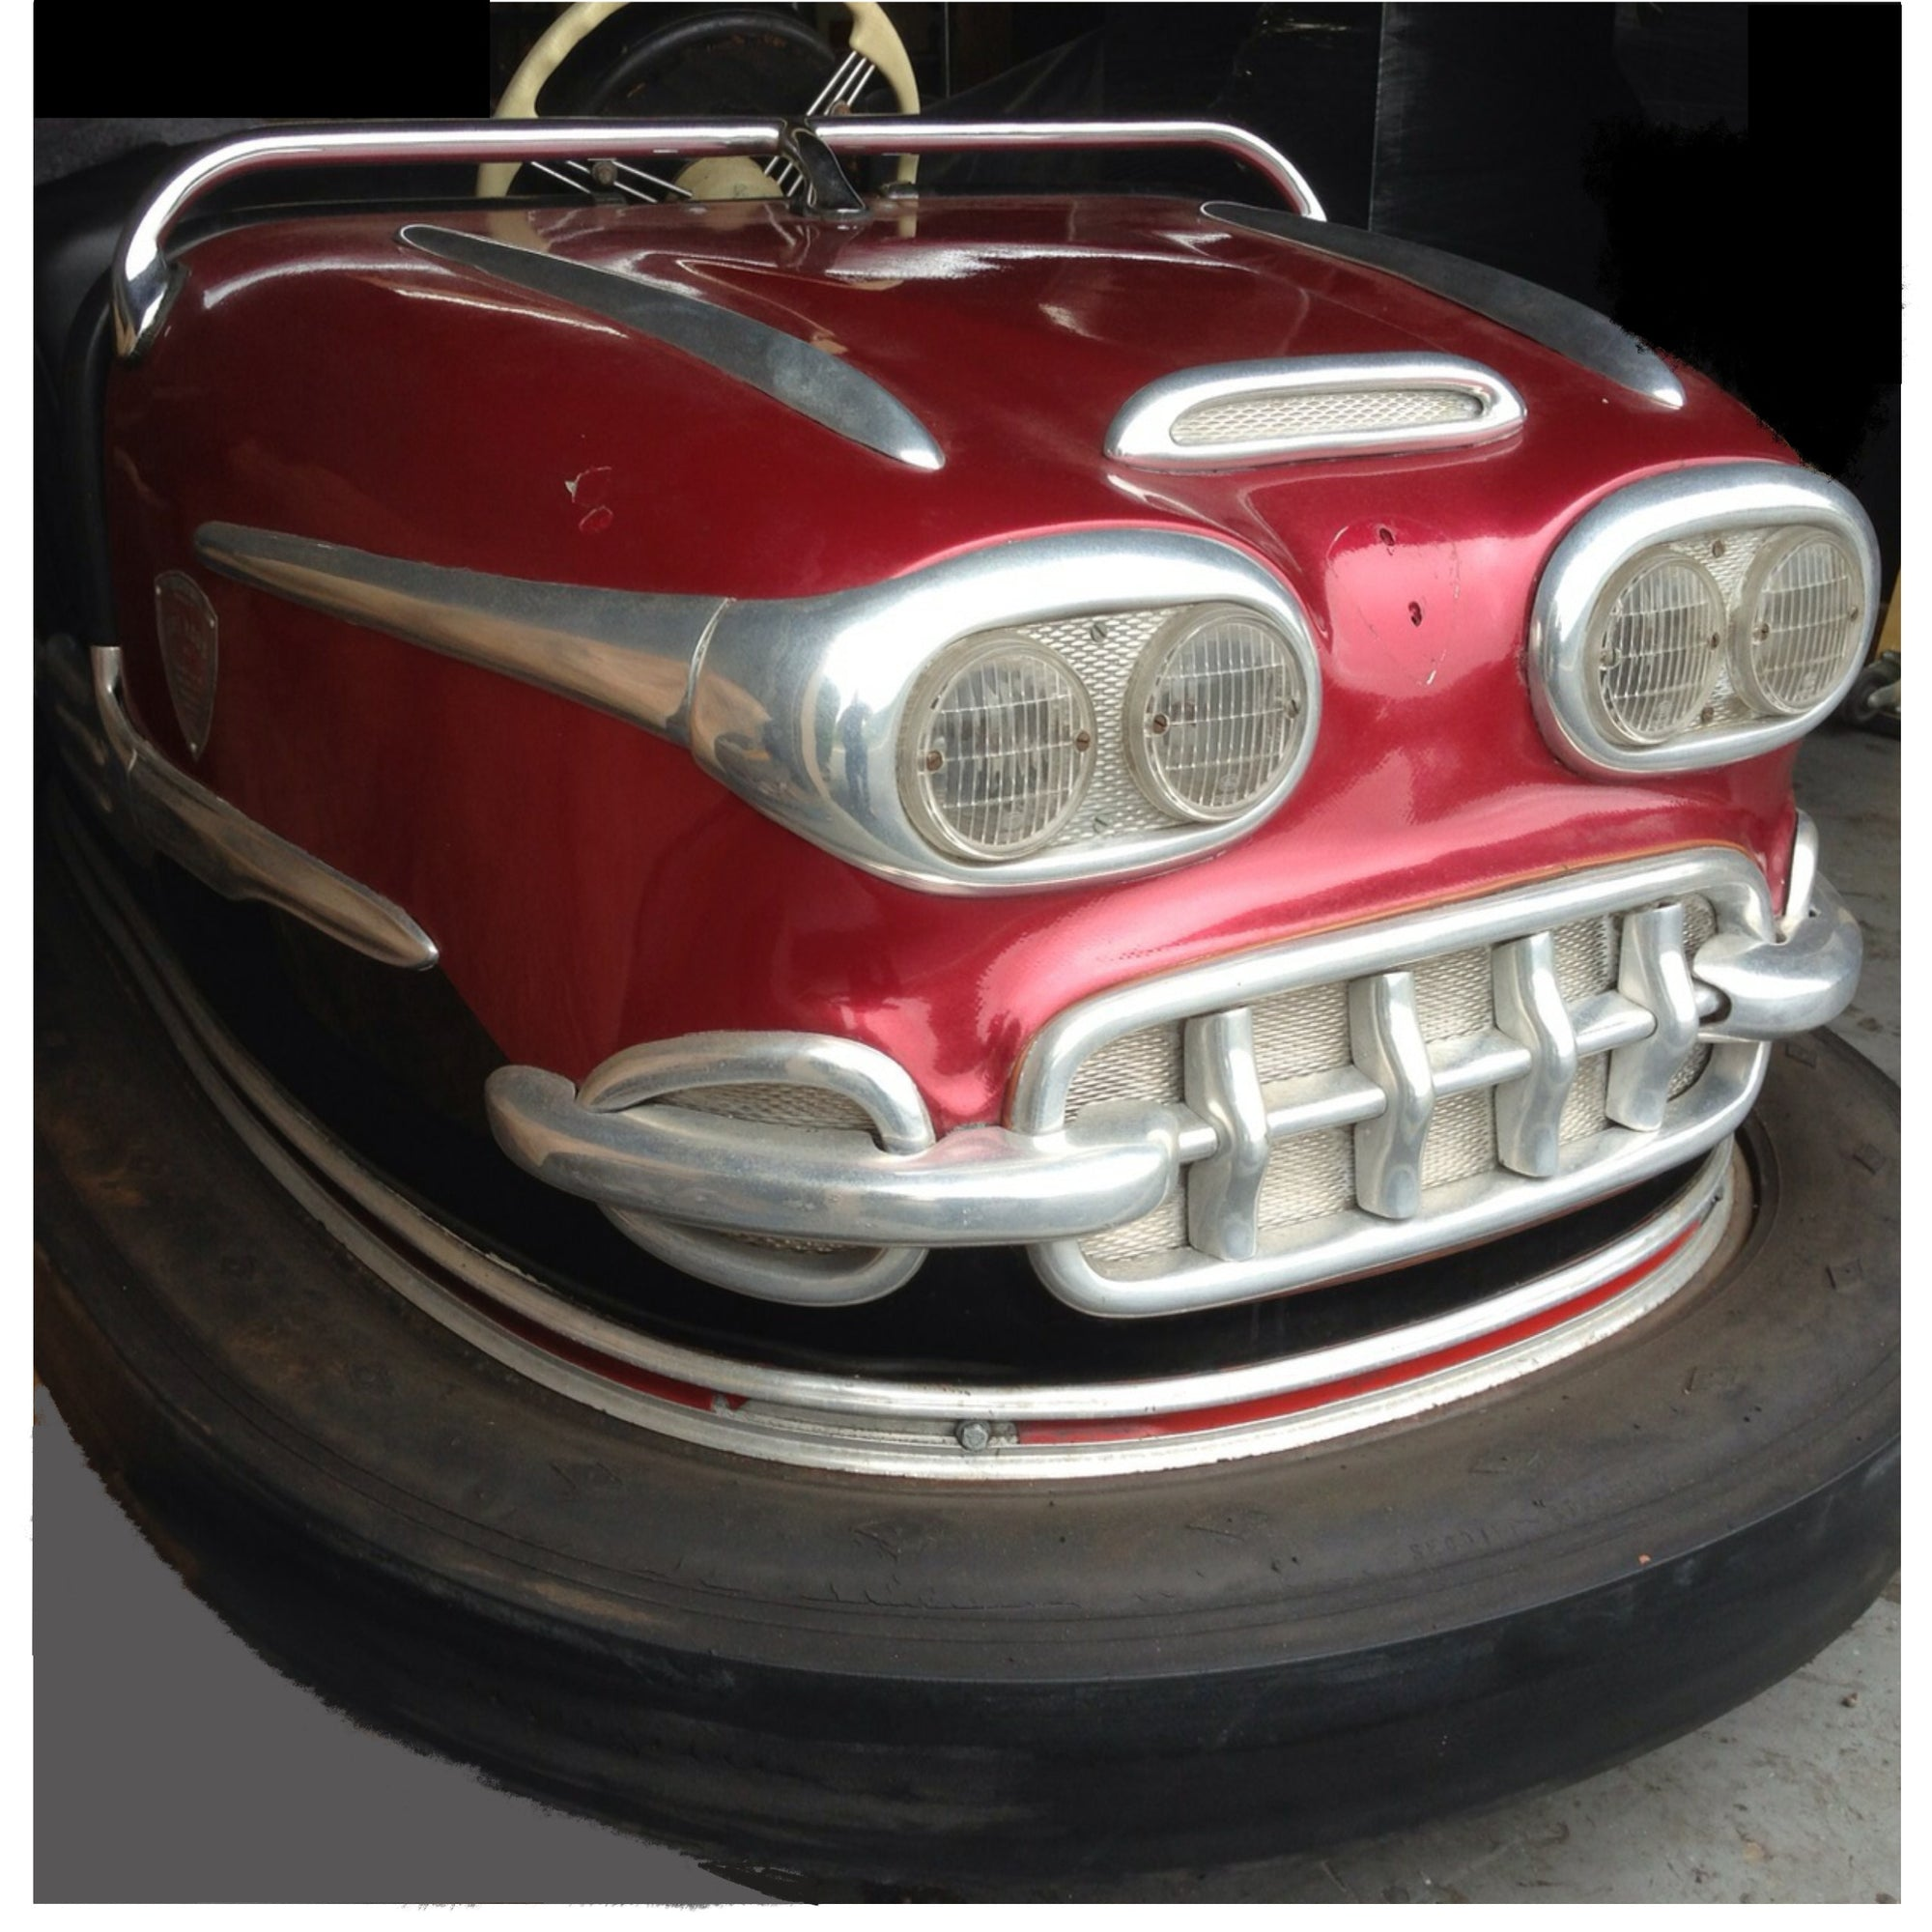 BUMPER CAR COLLECTION SOLD